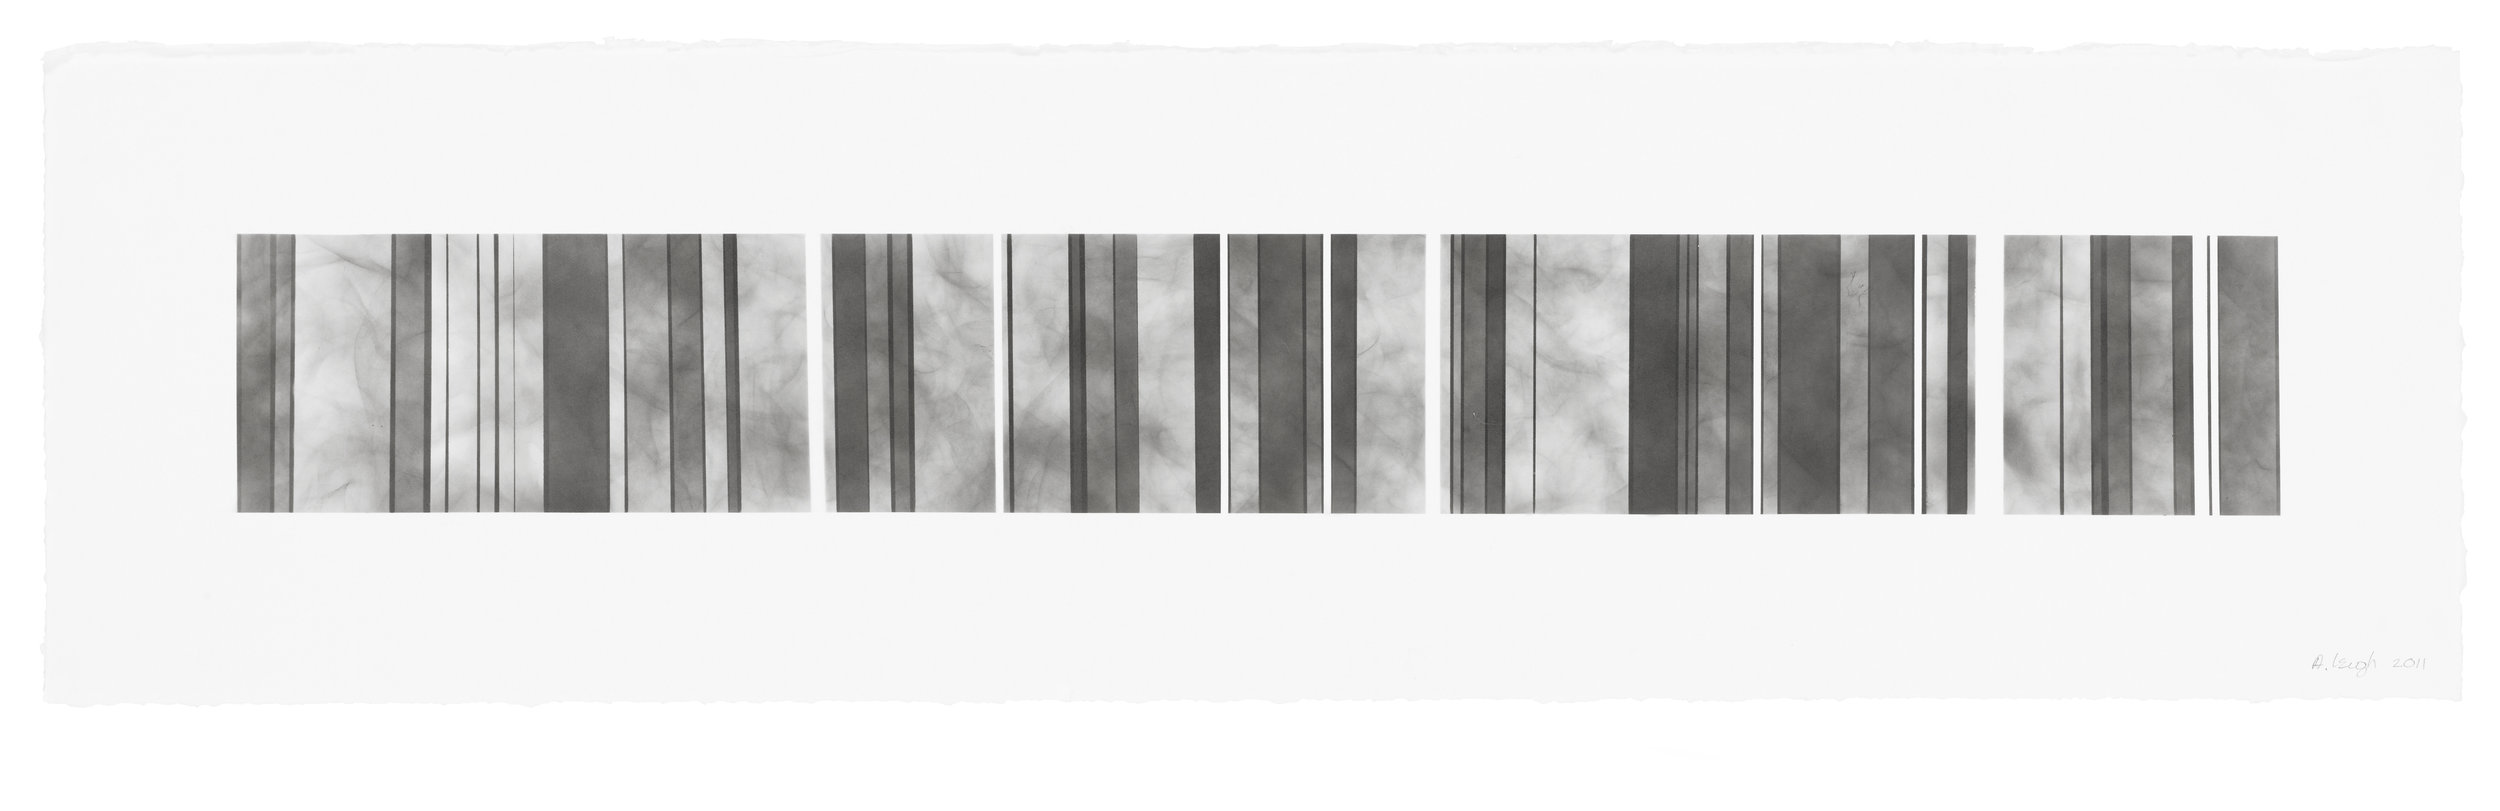 Barcode Series B 15, smoke on  paper, 11 by 40.5 inches, 2013